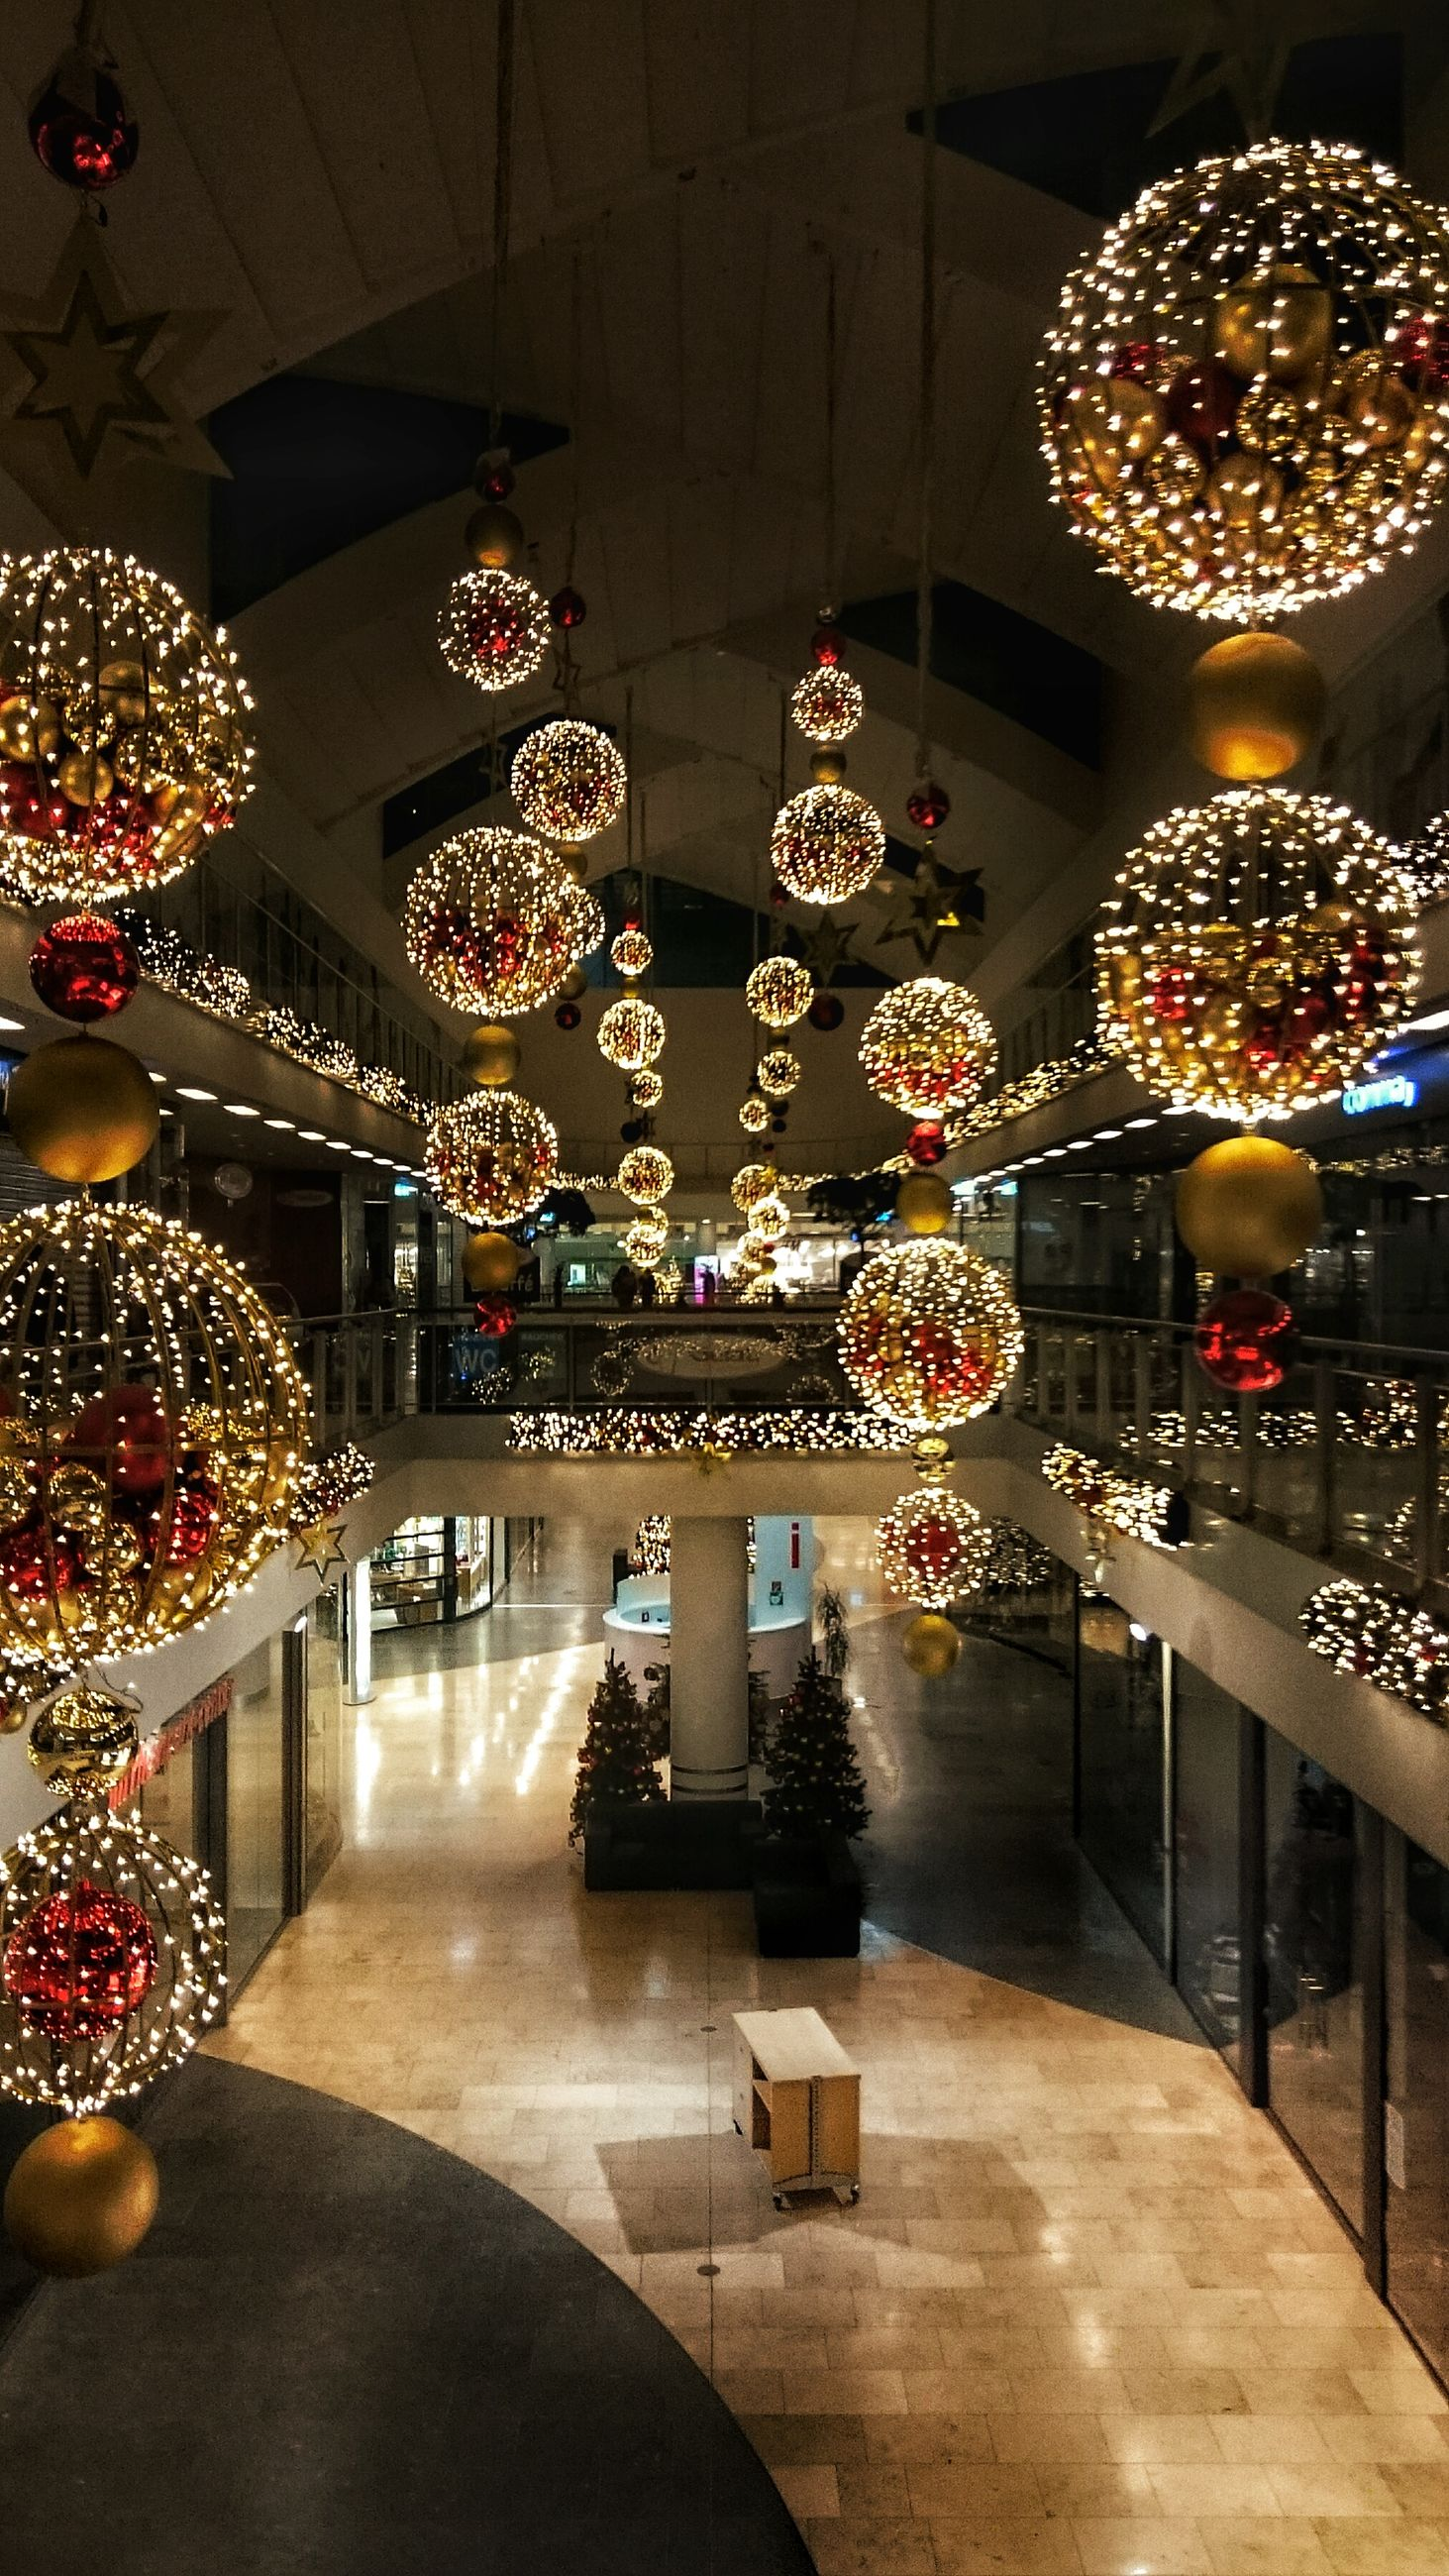 indoors, illuminated, decoration, lighting equipment, chandelier, ceiling, built structure, hanging, night, architecture, decor, electric lamp, table, ornate, christmas decoration, flooring, luxury, lantern, tradition, design